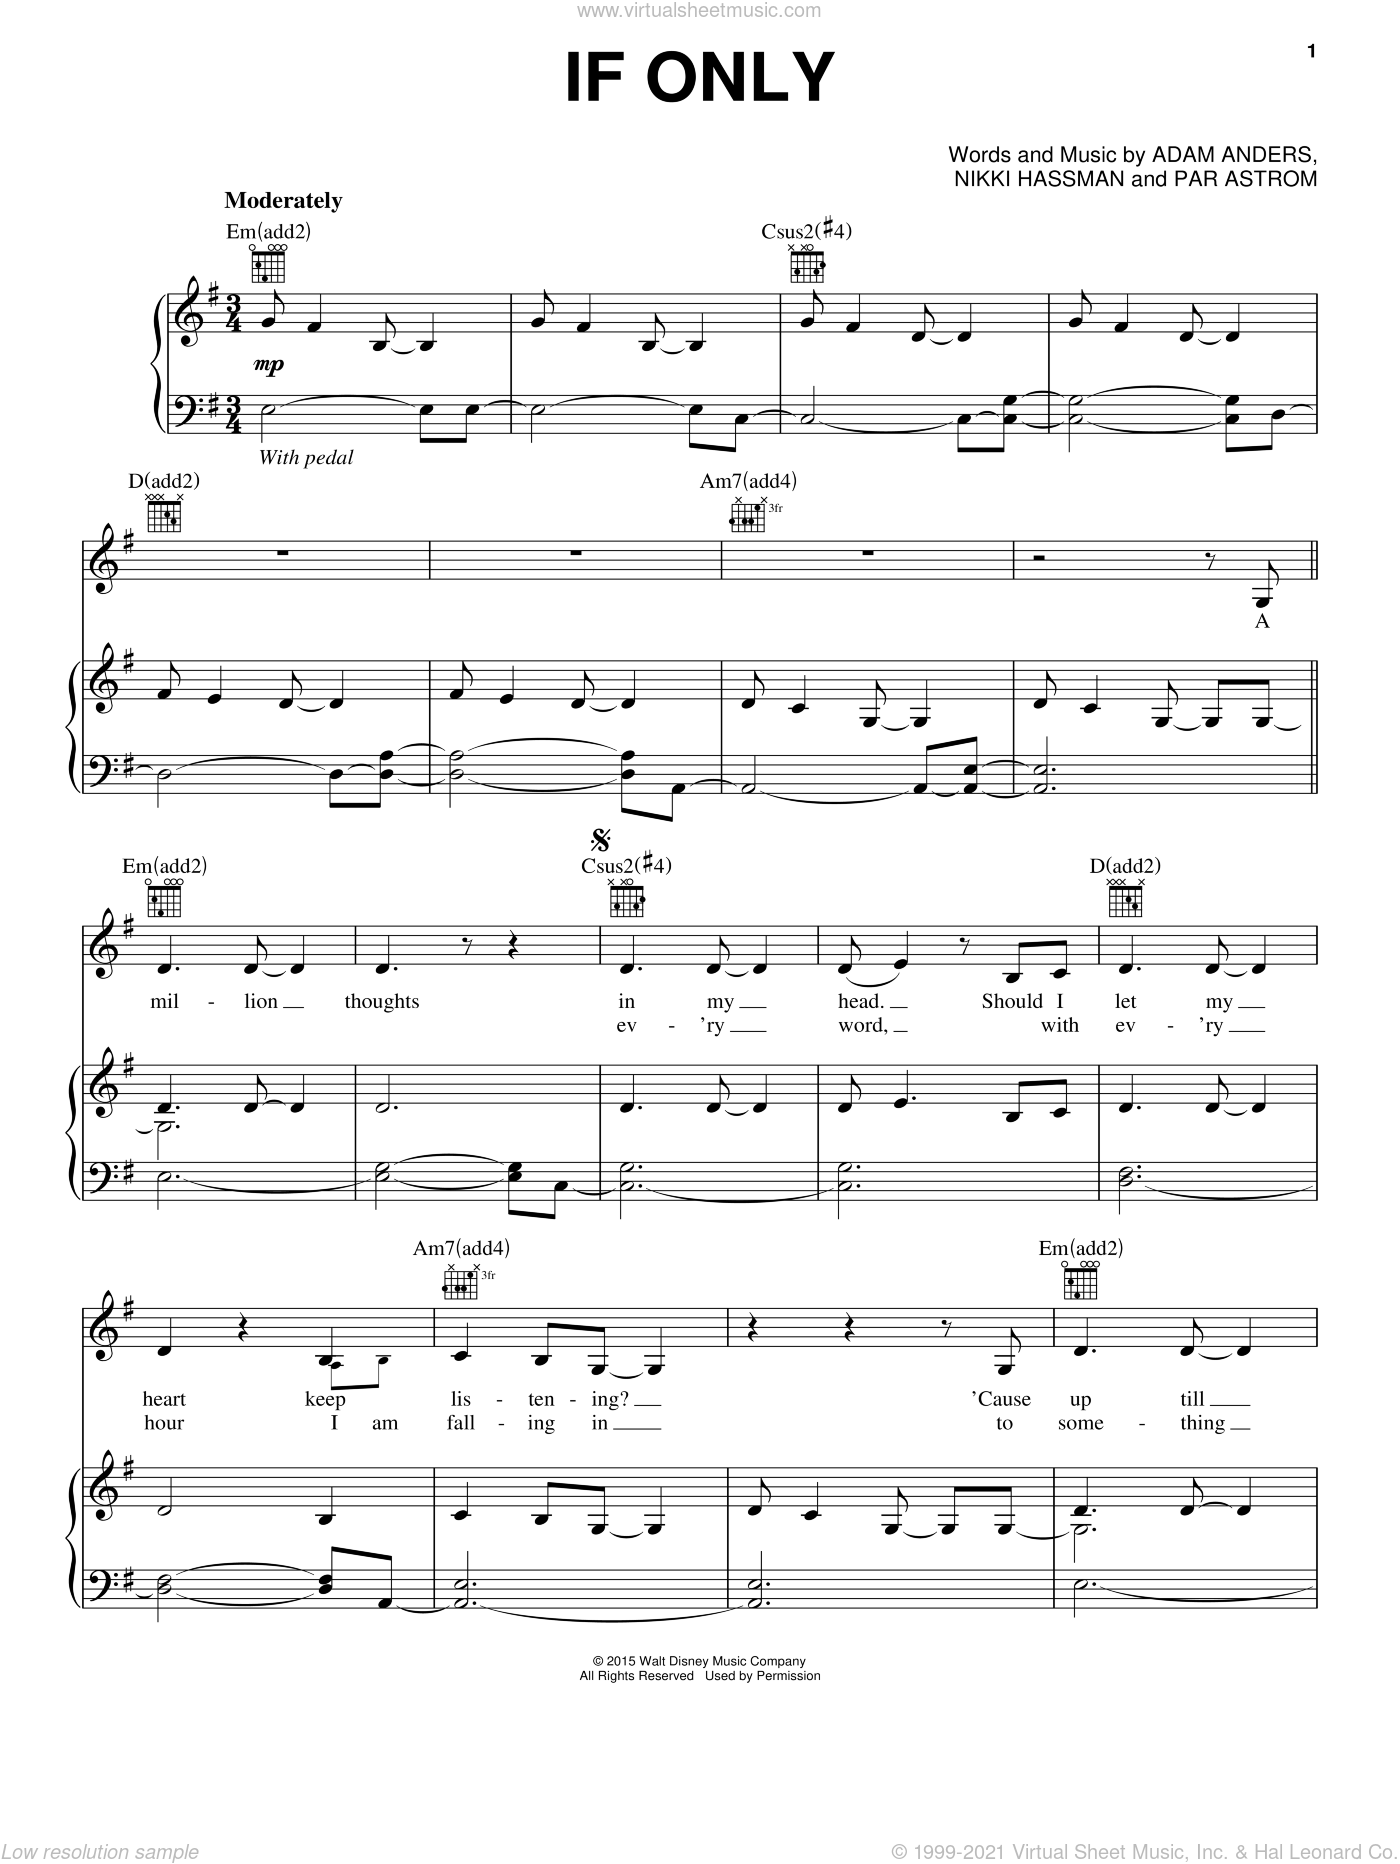 If Only sheet music for voice, piano or guitar by Par Astrom